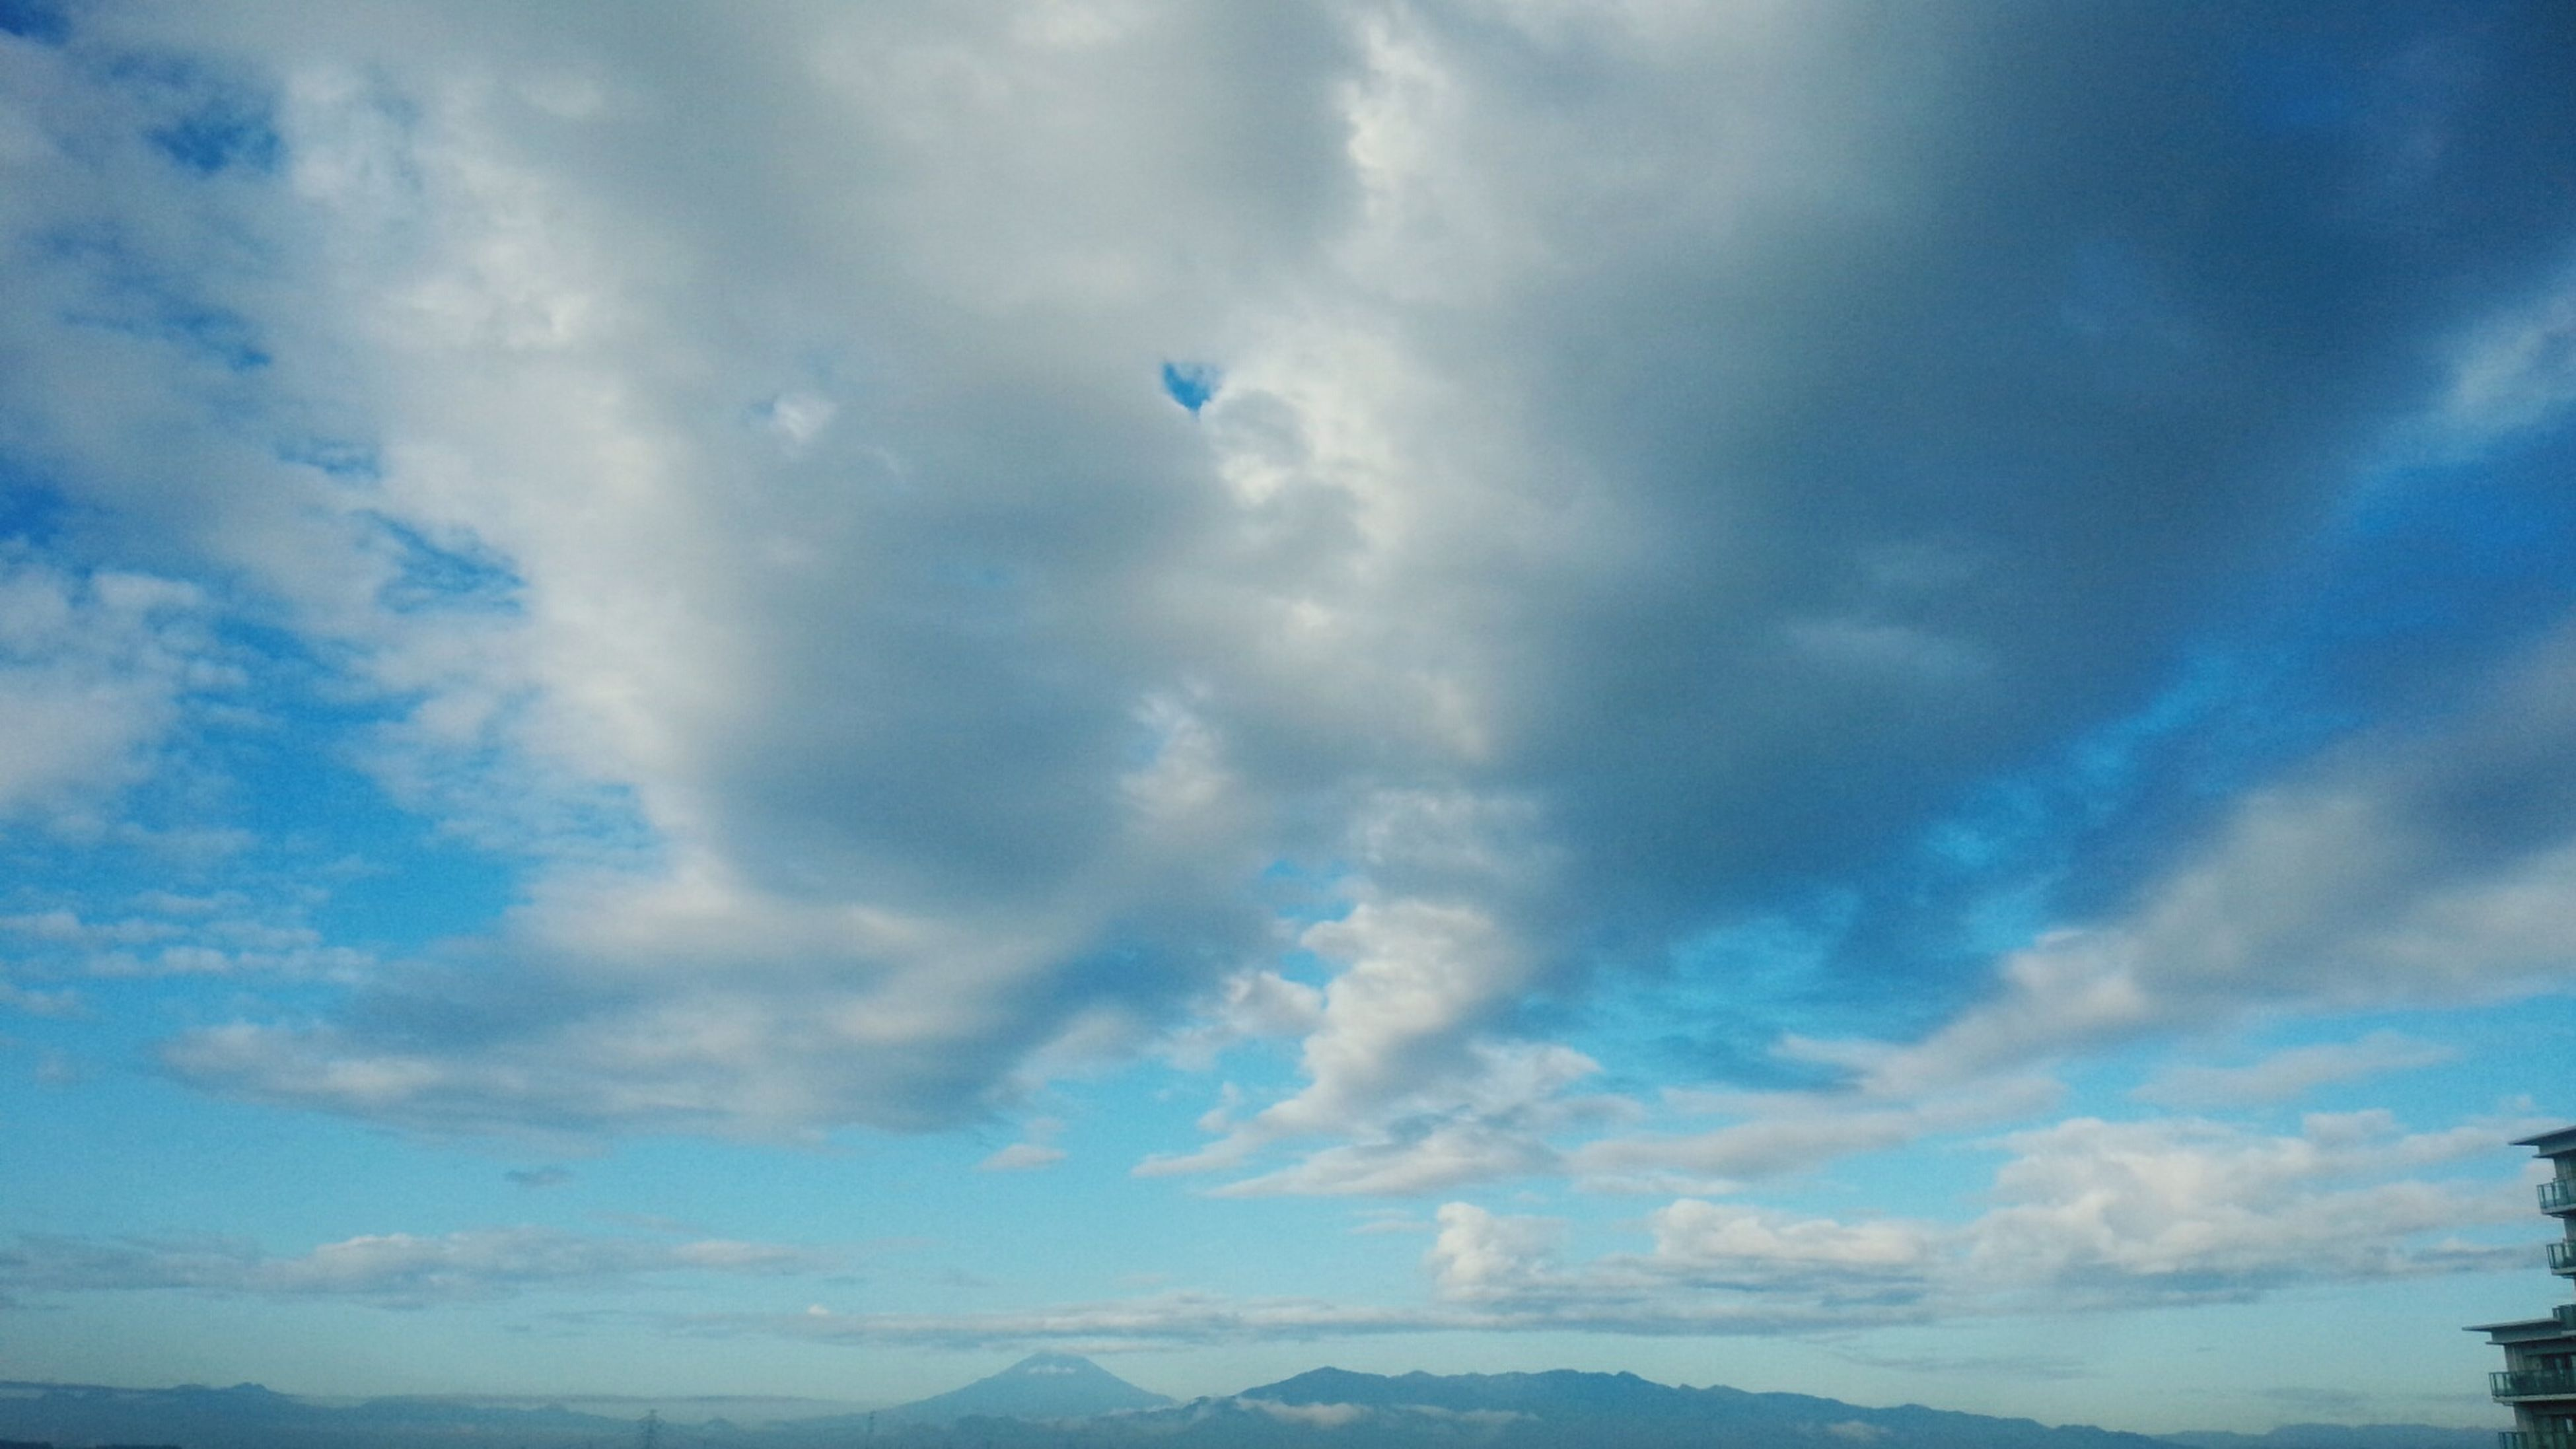 sky, tranquil scene, landscape, tranquility, scenics, cloud - sky, beauty in nature, mountain, nature, cloud, flying, non-urban scene, cloudy, blue, mountain range, outdoors, day, majestic, remote, no people, physical geography, solitude, cloudscape, fluffy, atmospheric mood, countryside, horizon over land